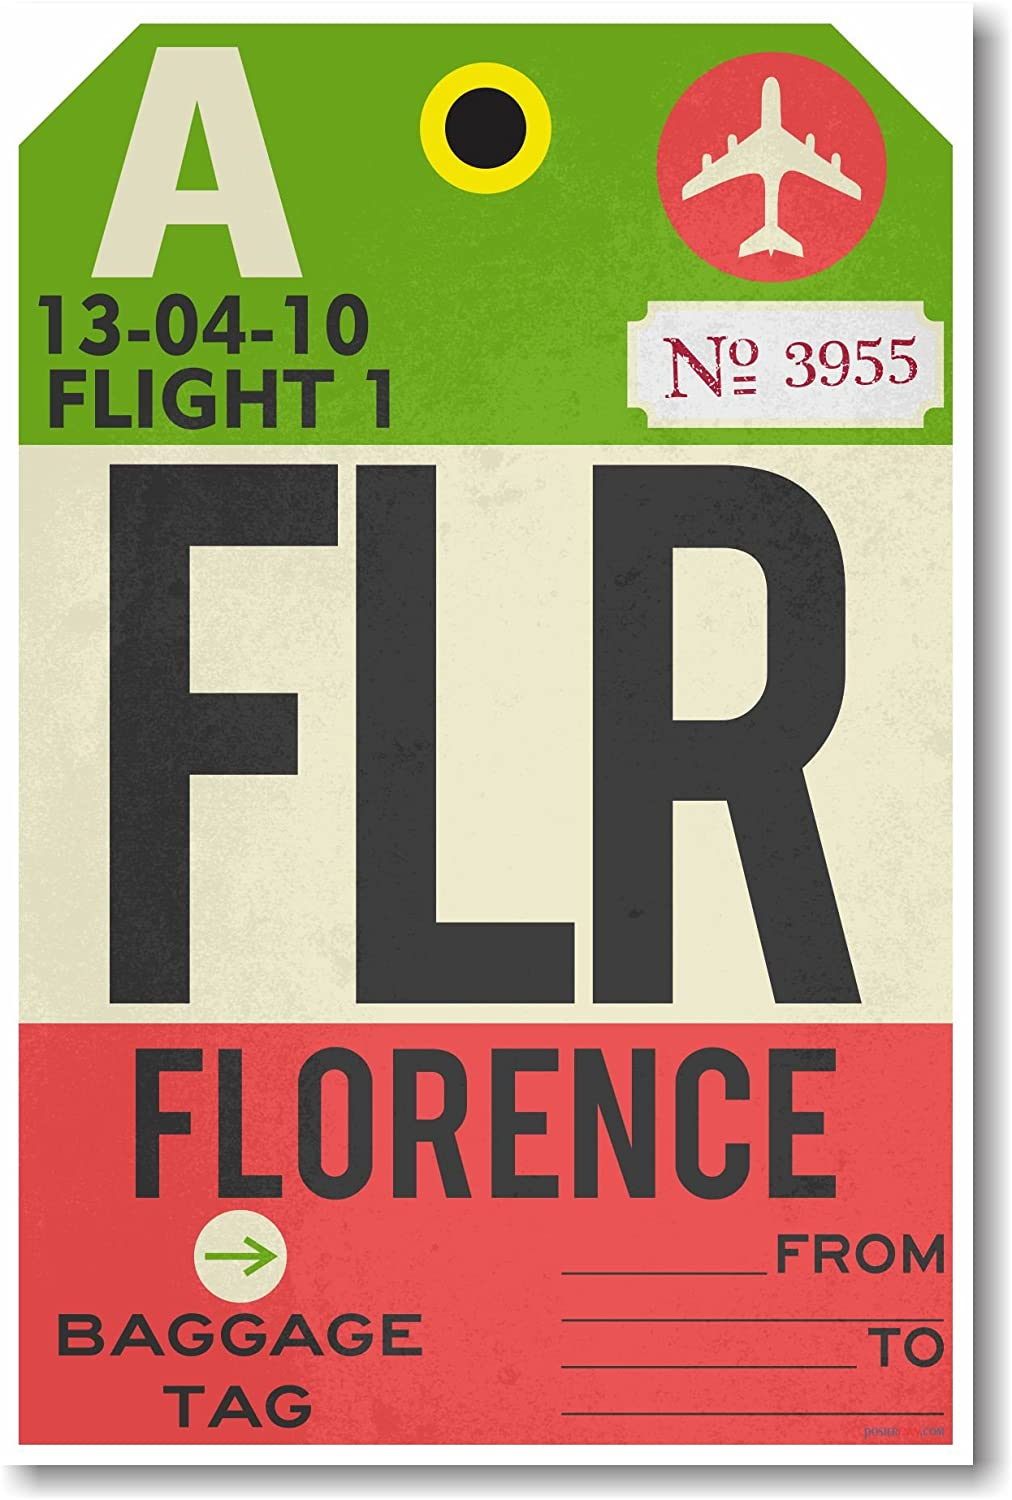 FLR - Florence - Airport Tag - NEW Travel Poster